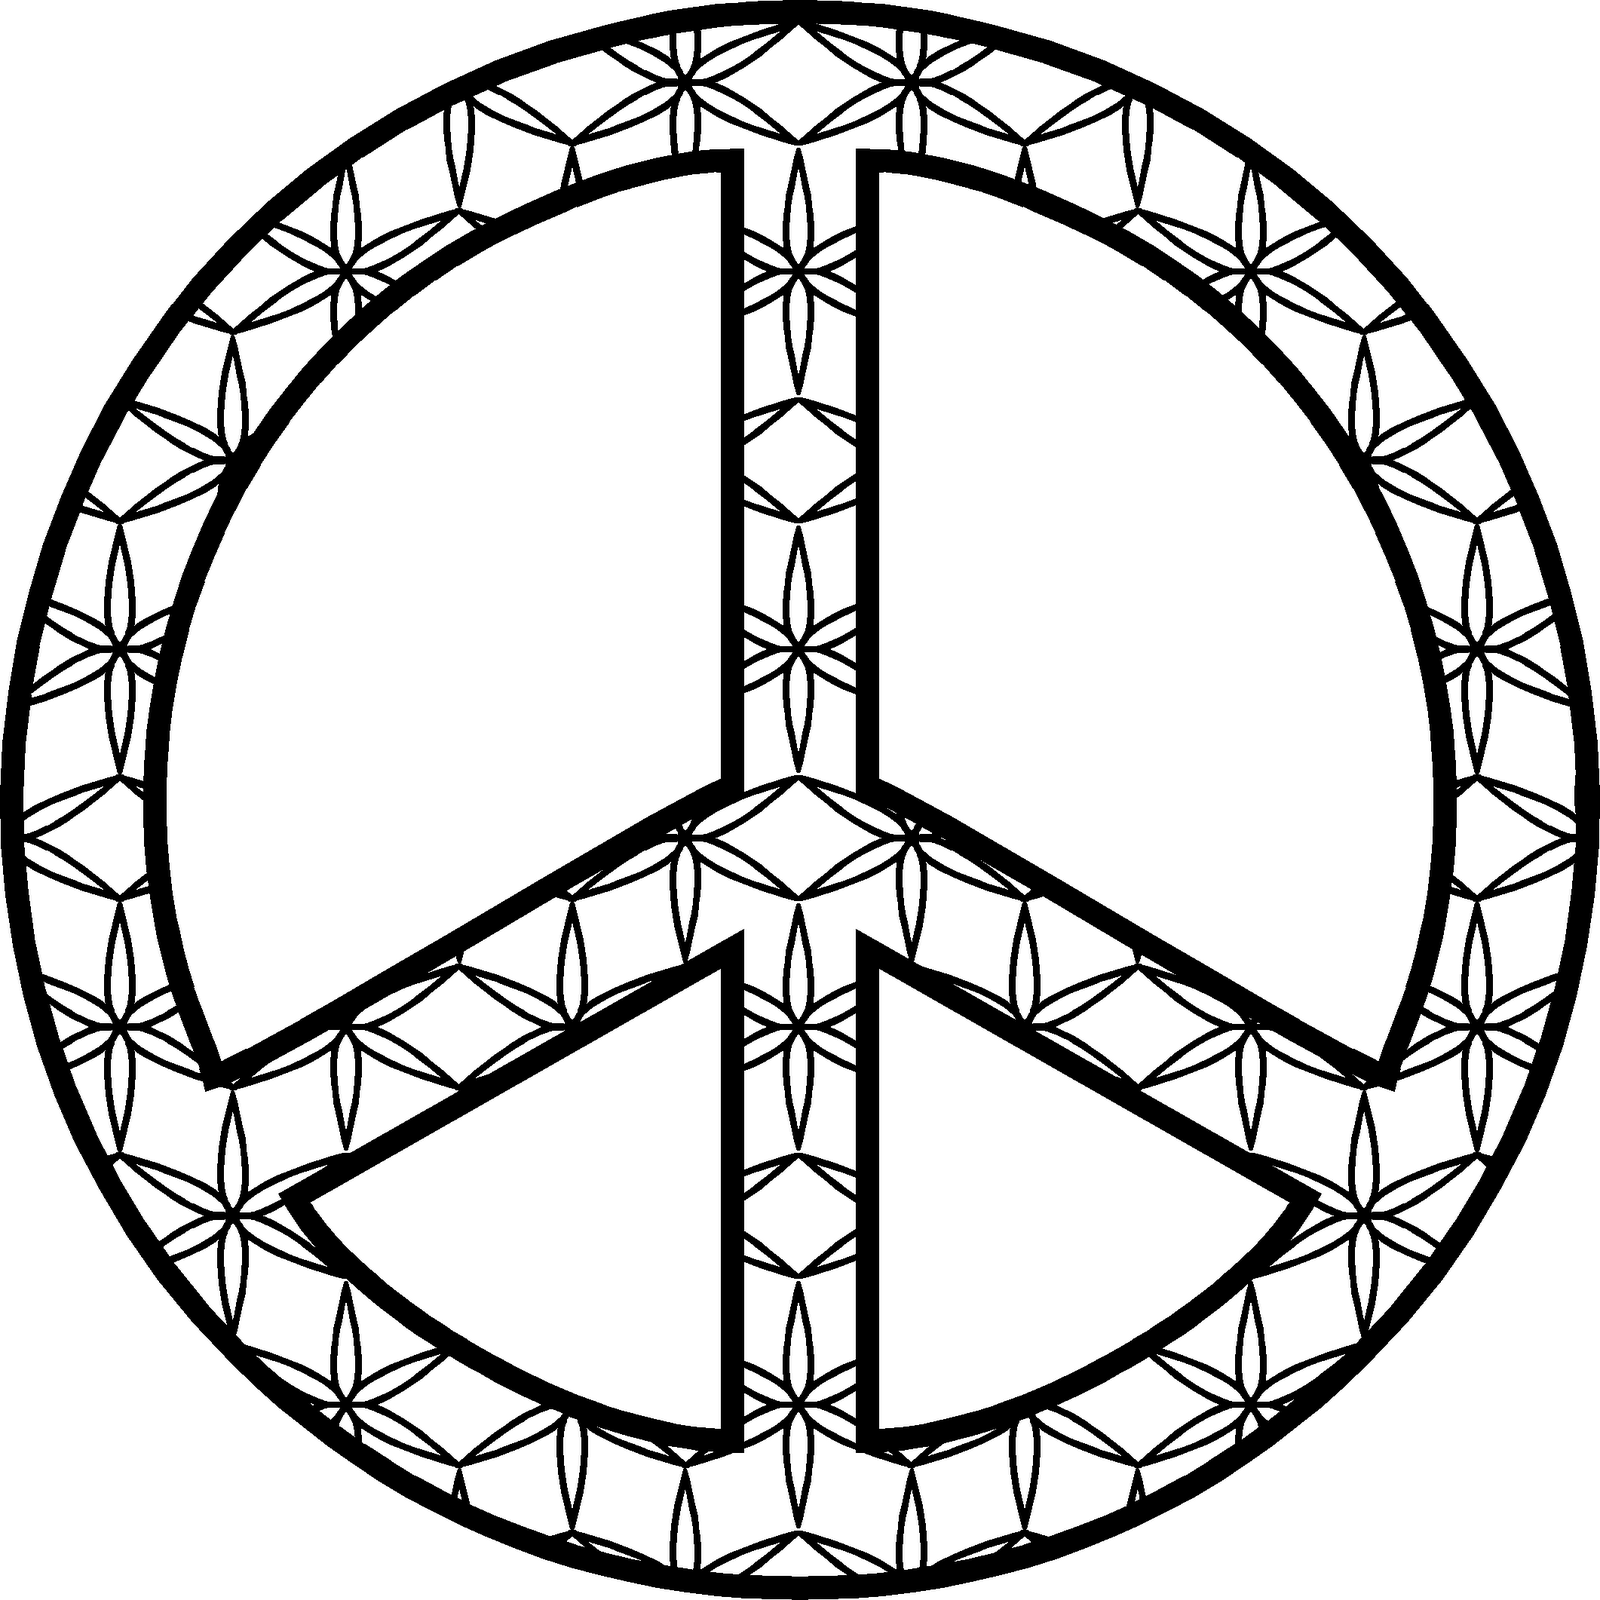 coloring pages : Peace Coloring Pages For Adults Awesome 20 ... | 1600x1600